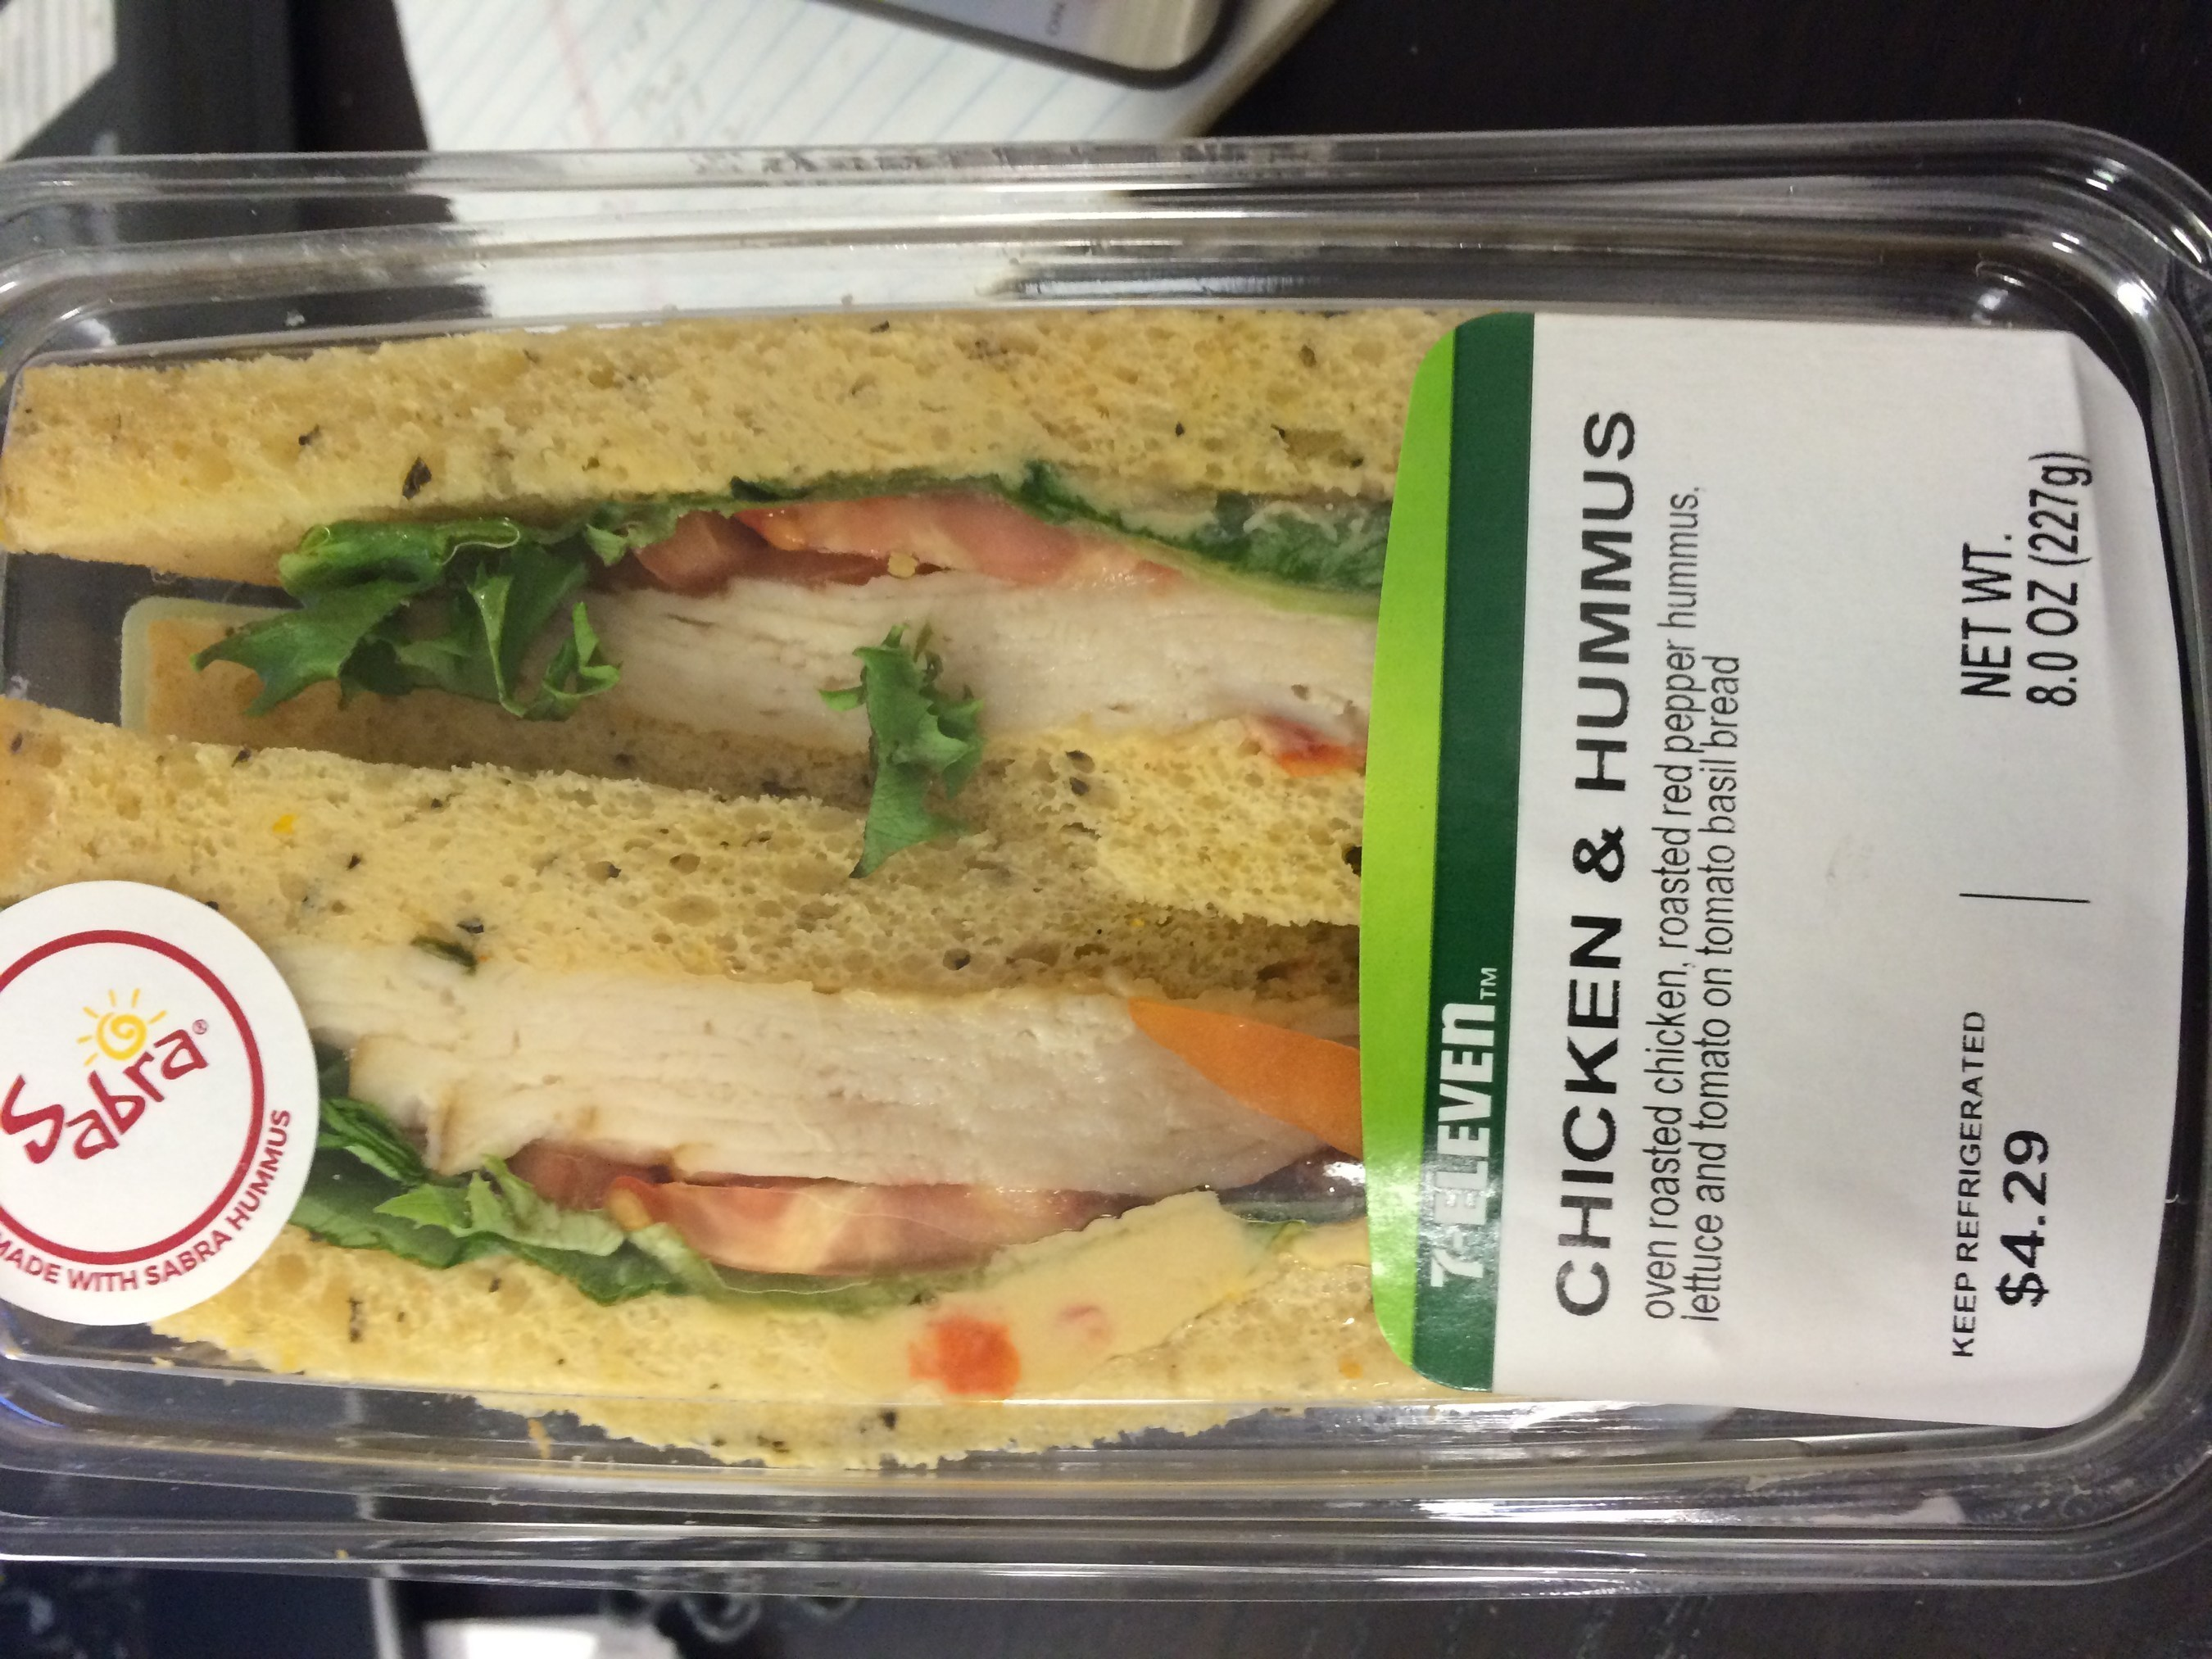 7 Eleven Chicken with Hummus sandwiches, packaged in a plastic clam shell, net wt. 8 oz., UPC  0 52548 58888 5